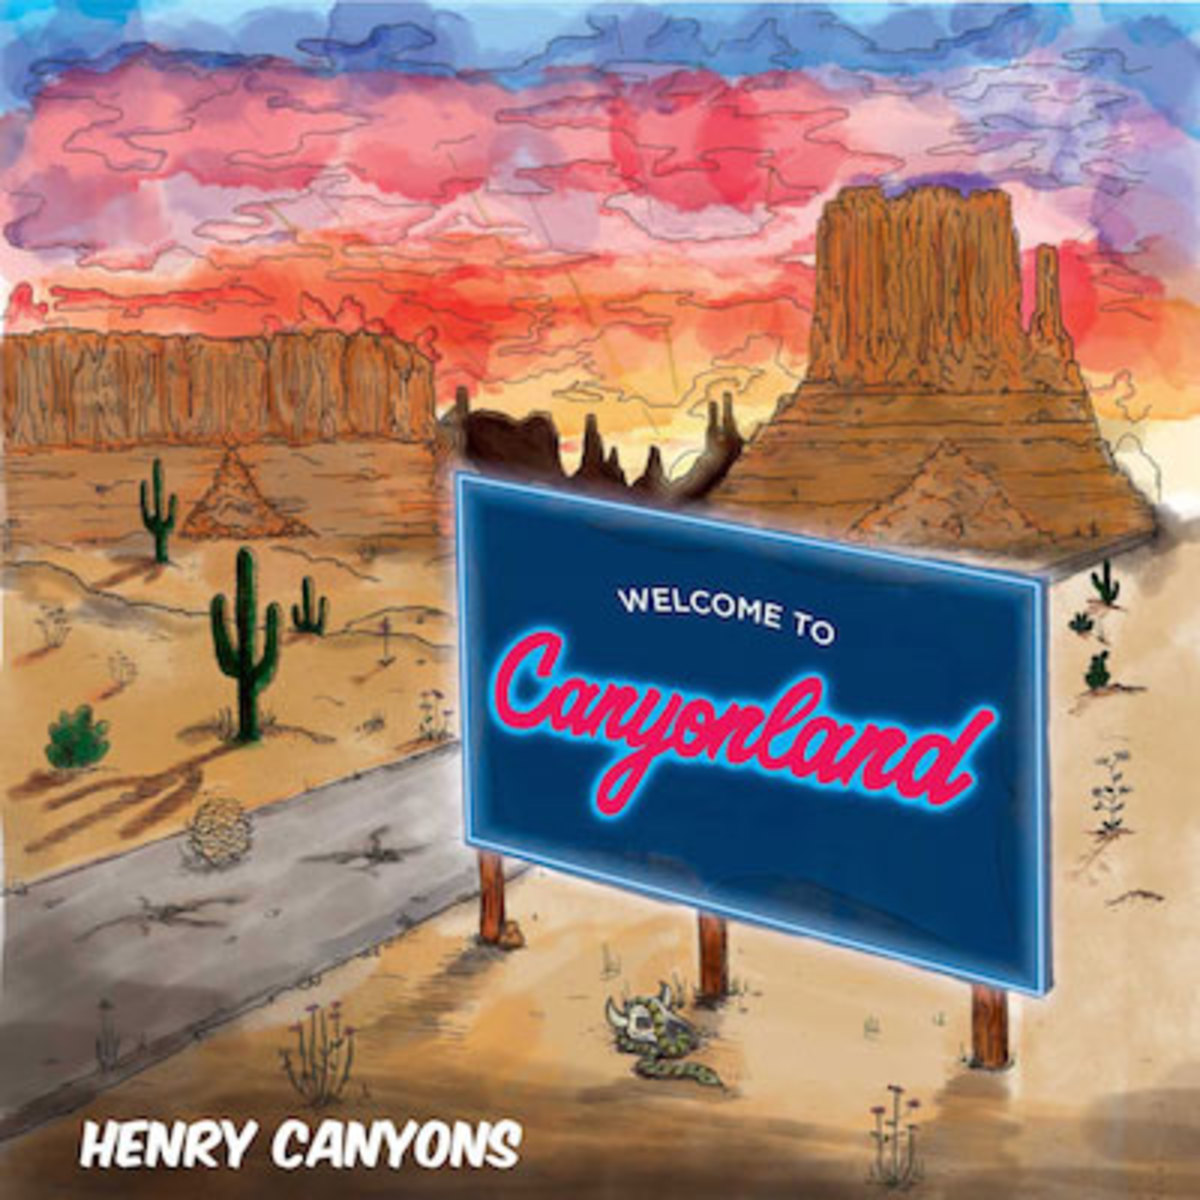 henry-canyons-welcome-to-canyonland.jpg